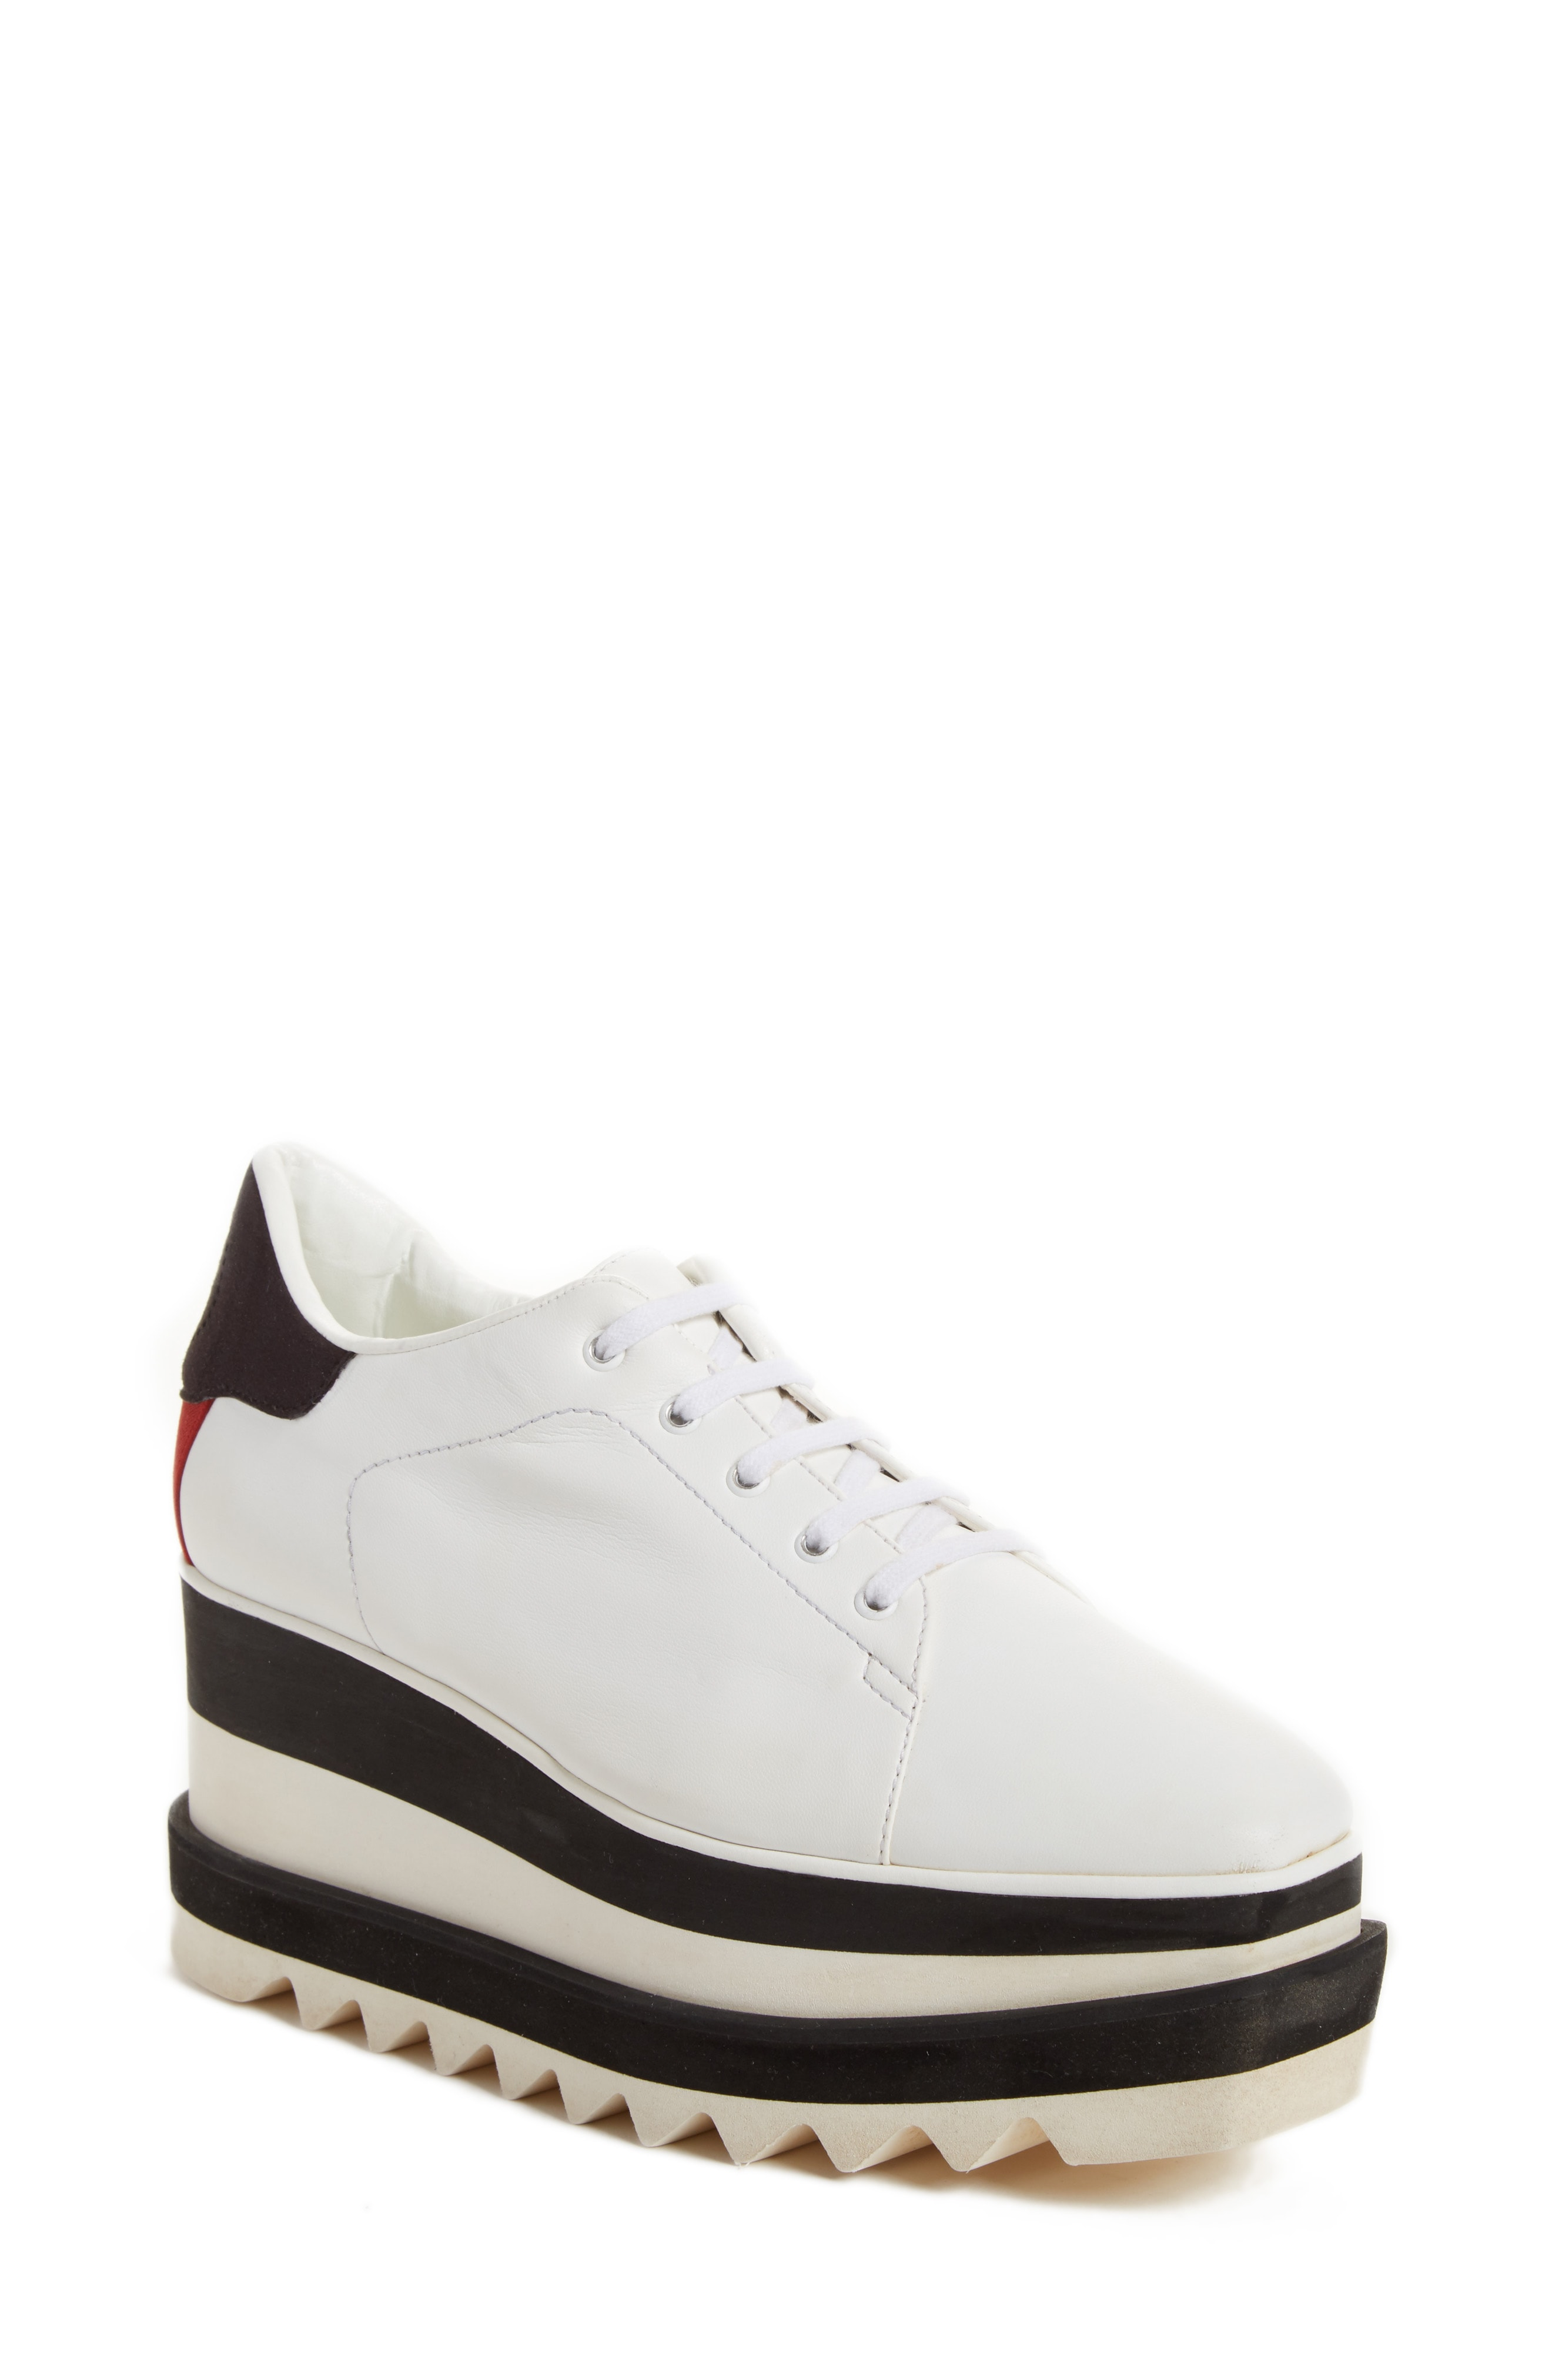 Sneak-Elyse Flatform Sneaker by Stella McCartney, available on nordstrom.com for $695 Olivia Culpo Shoes Exact Product